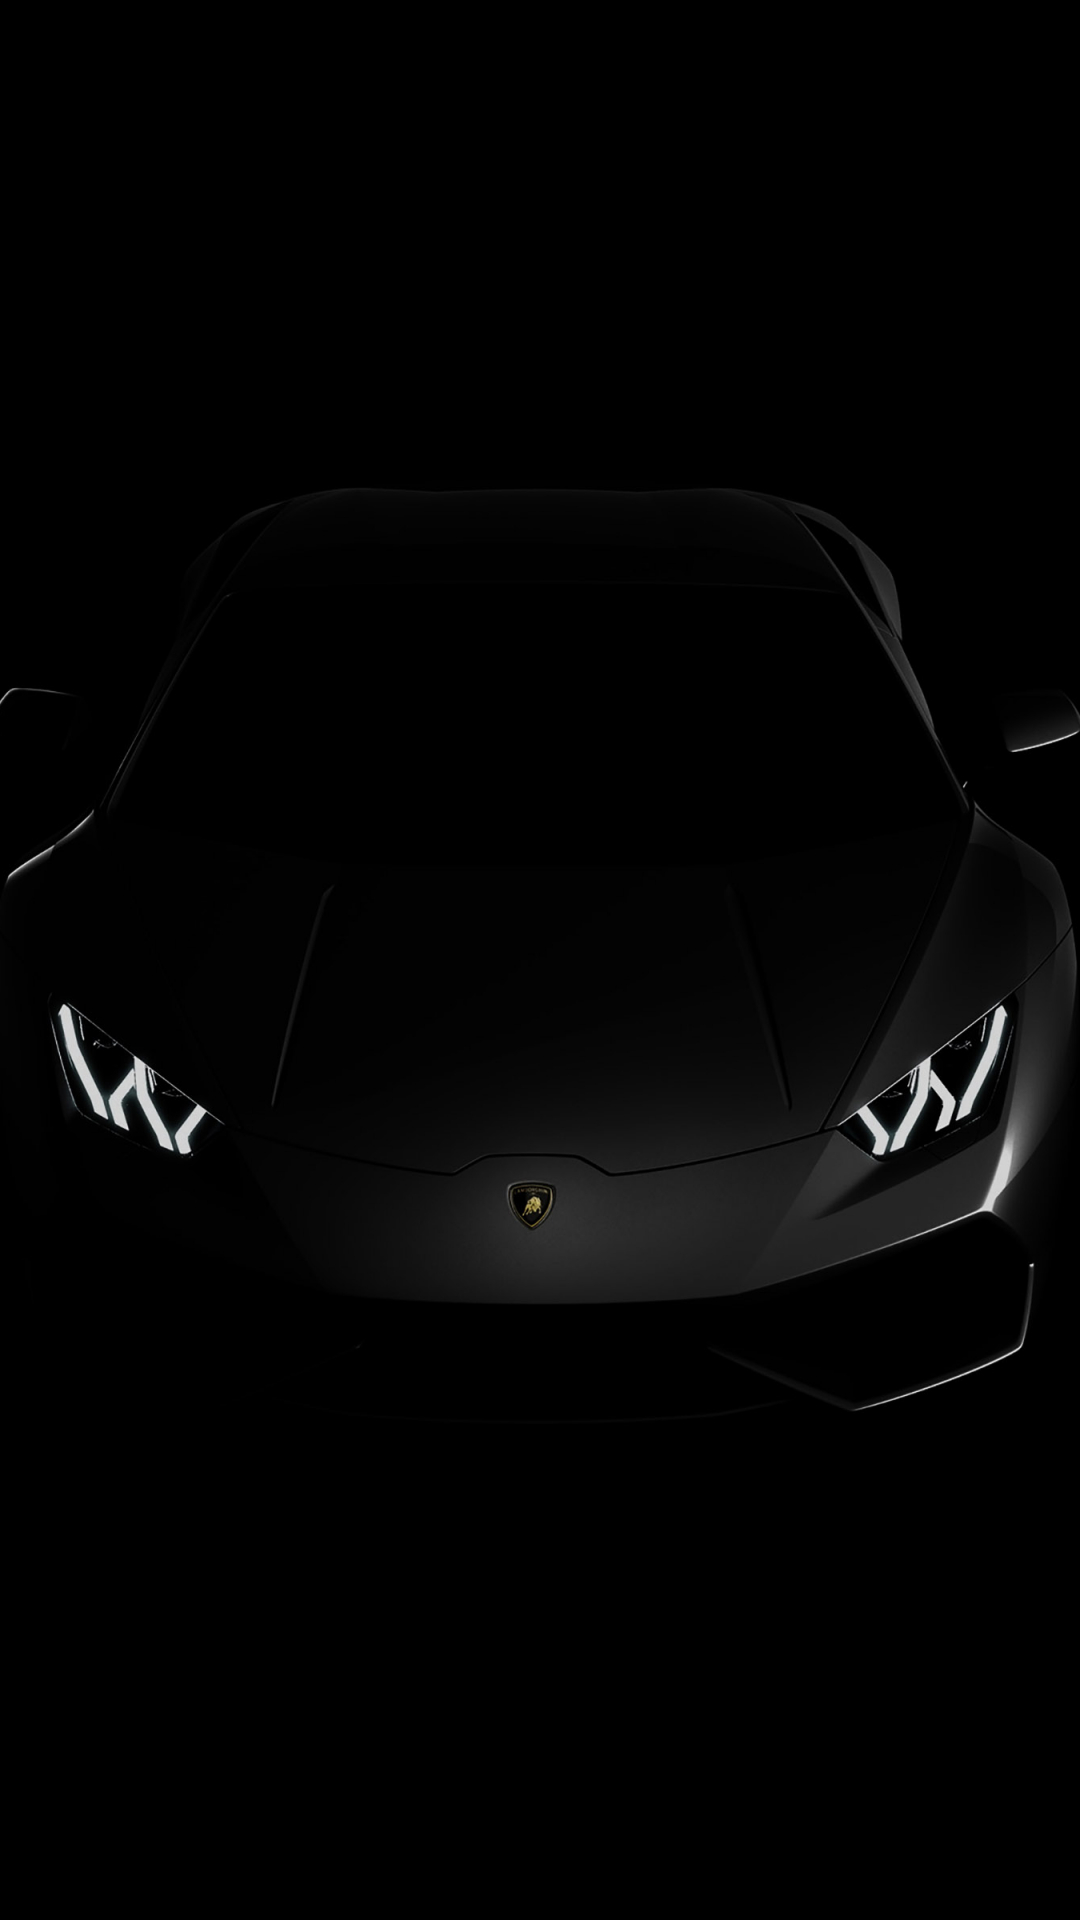 Free Download Lamborghini Huracan Lp Black Dark 4k Wallpaper View